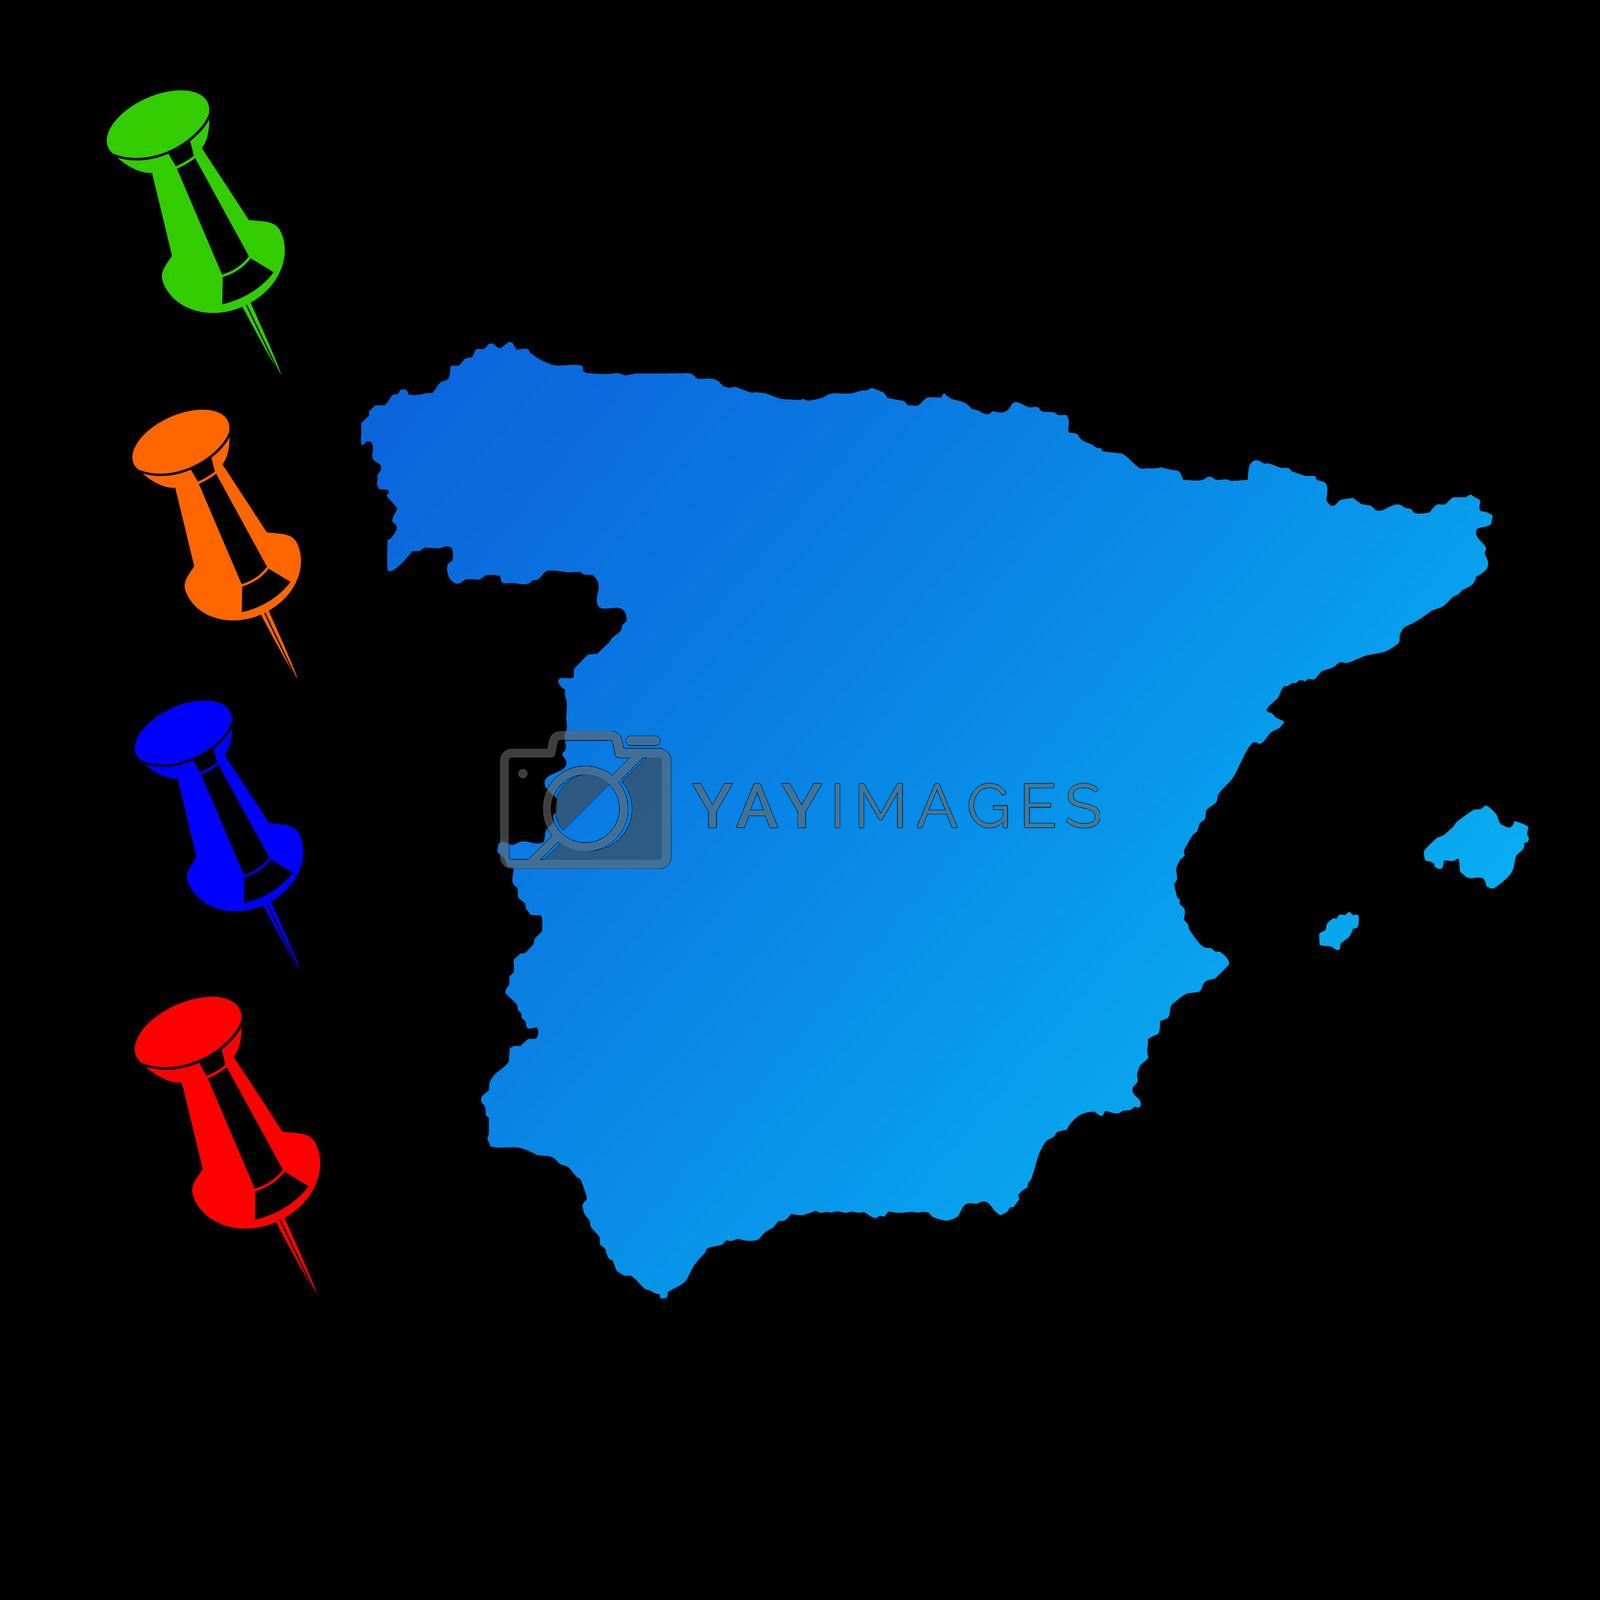 Spain travel map with push pins on black background.